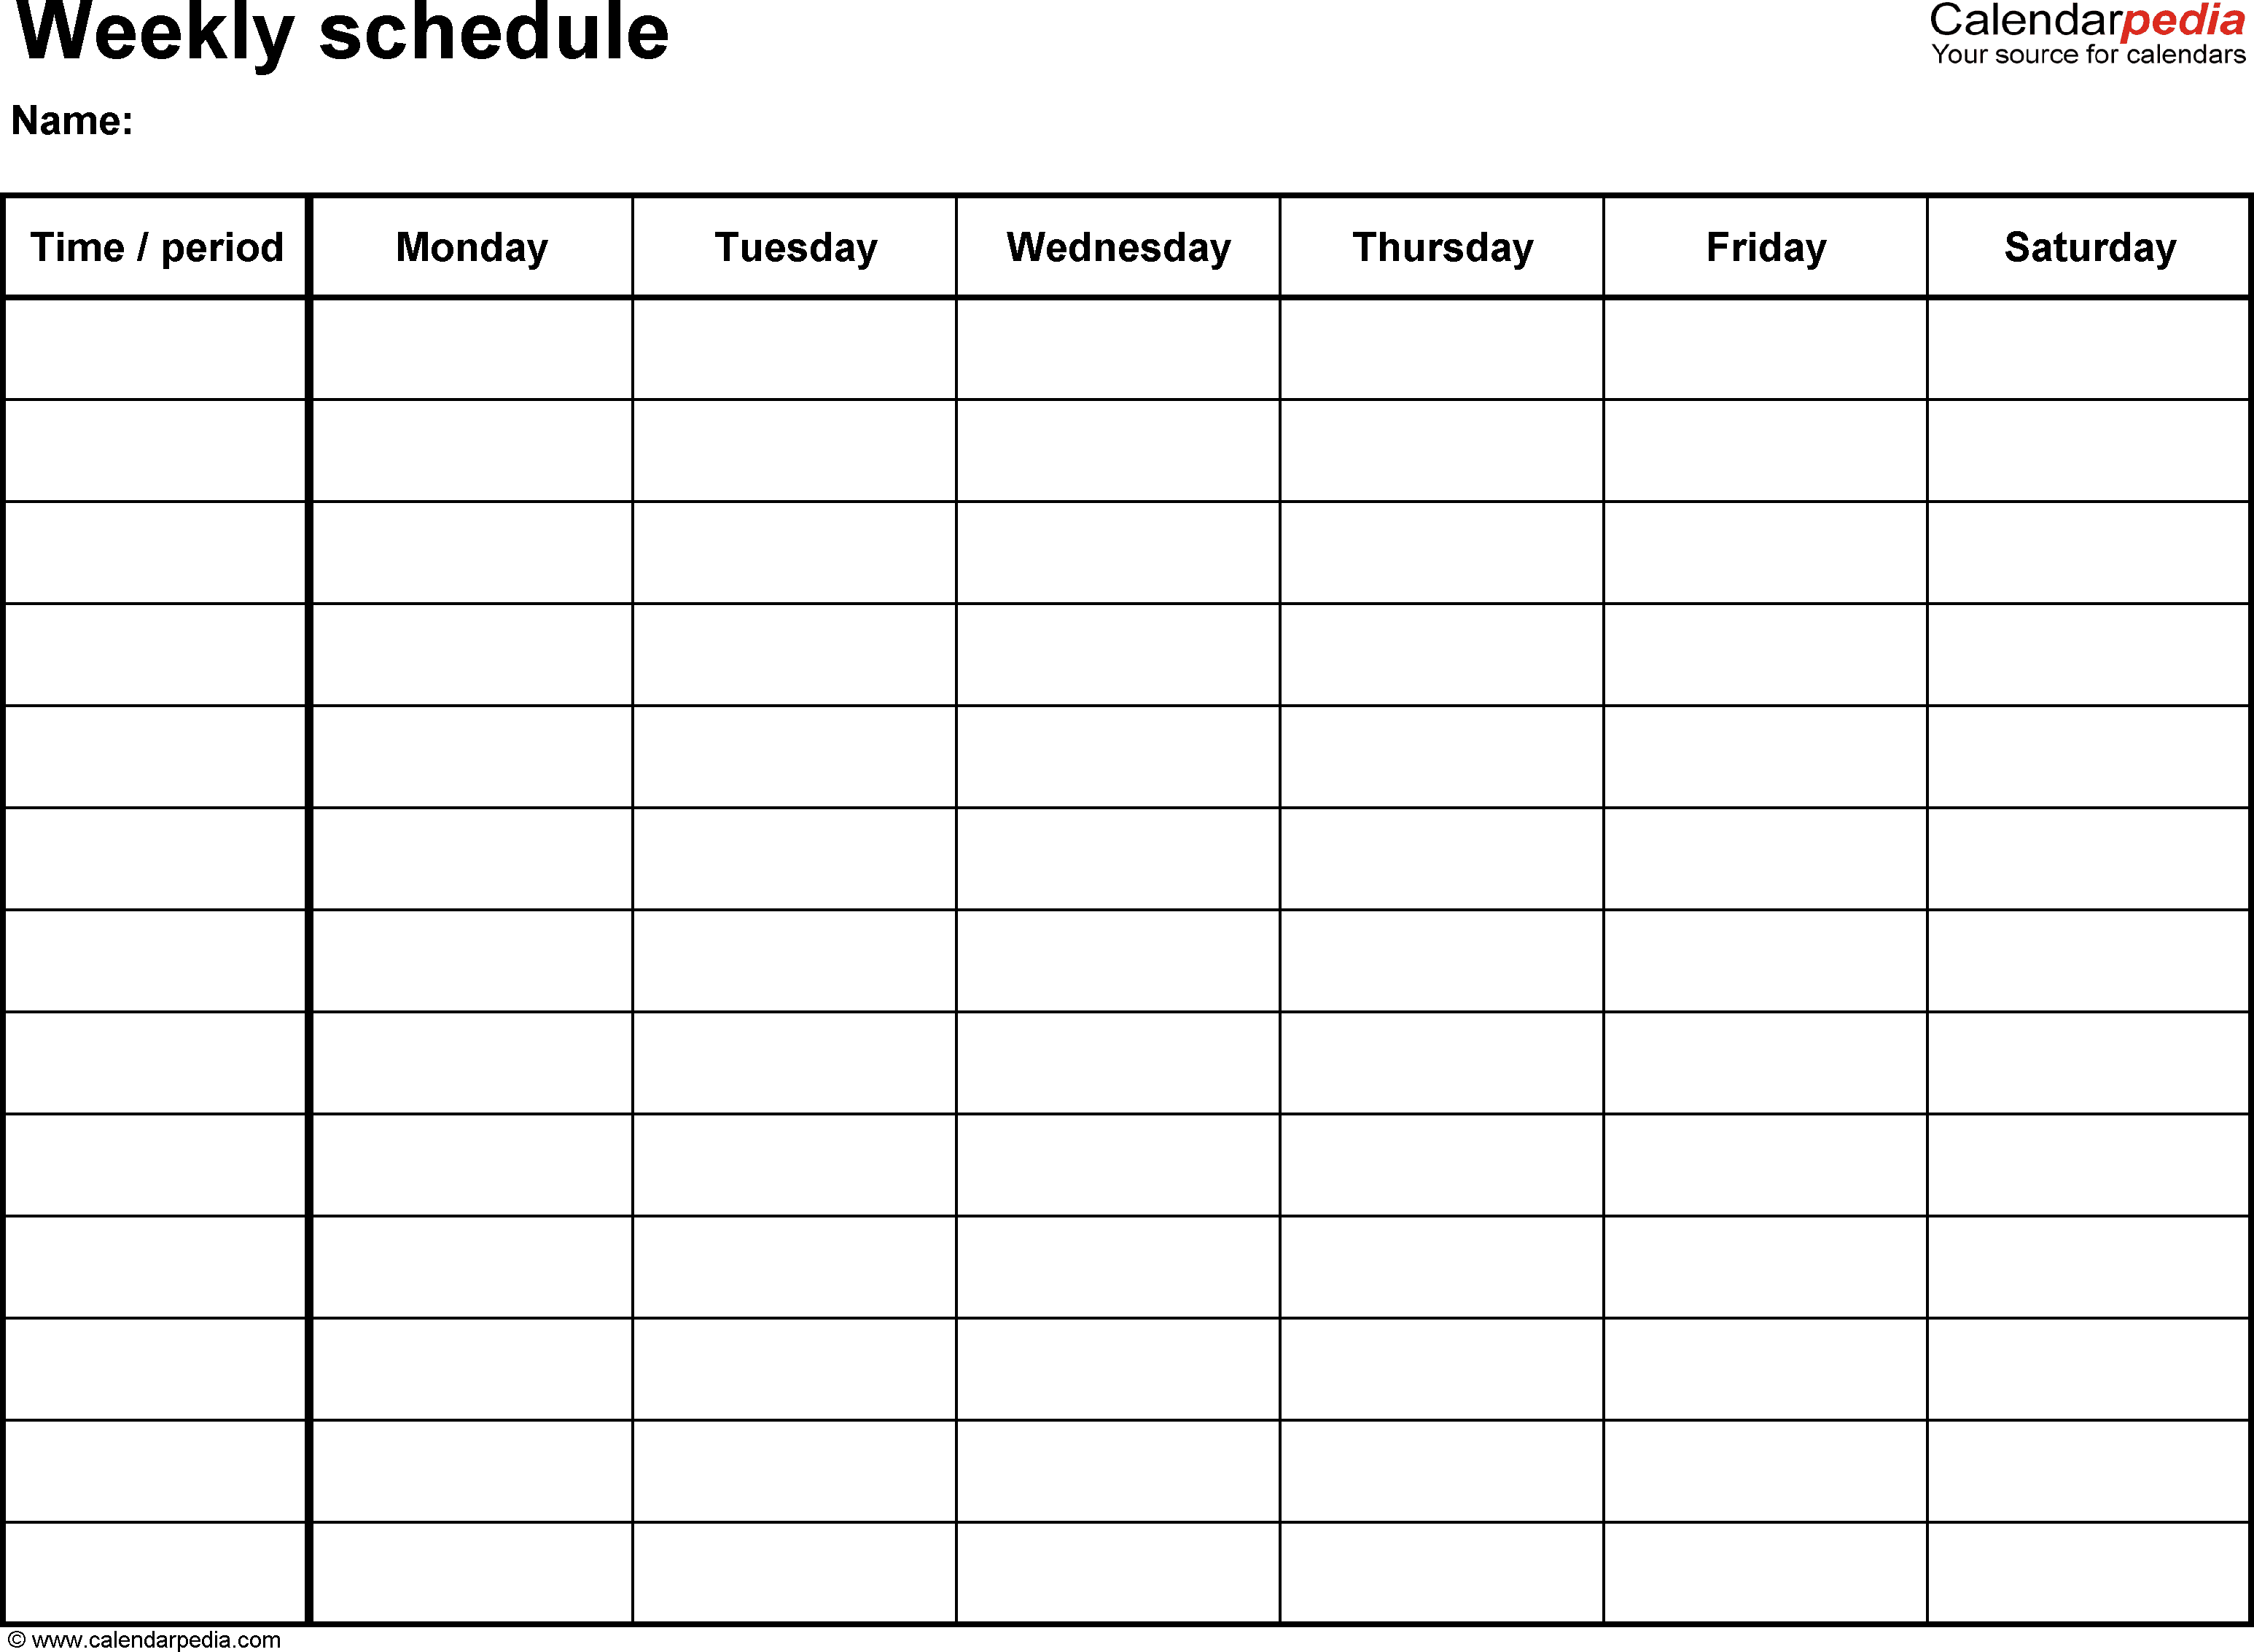 timetable outline template - weekly schedule template pdf charlotte clergy coalition